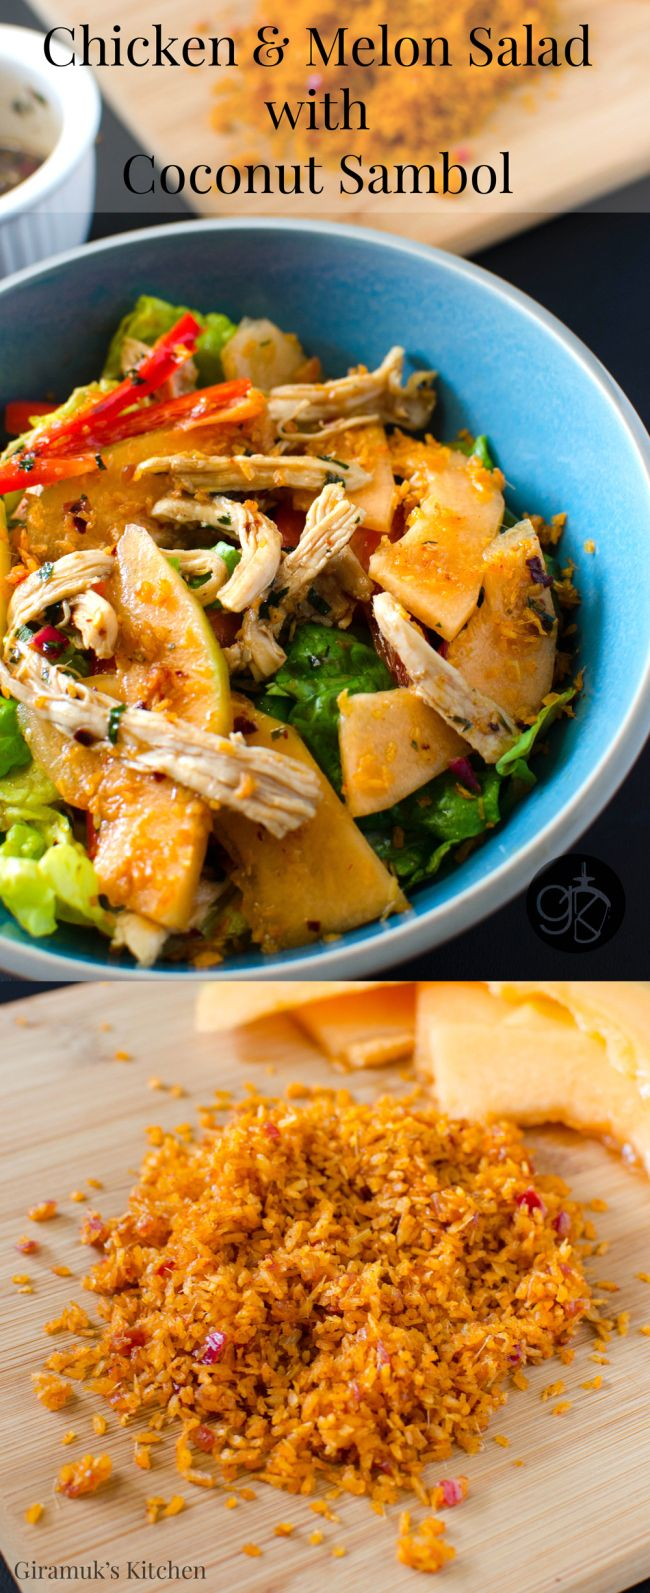 Chicken and Melon Salad with Coconut Sambol - A delicious and fresh Chicken and Melon Salad with a tangy and spicy tamarind dressing and a spicy coconut sambol topping